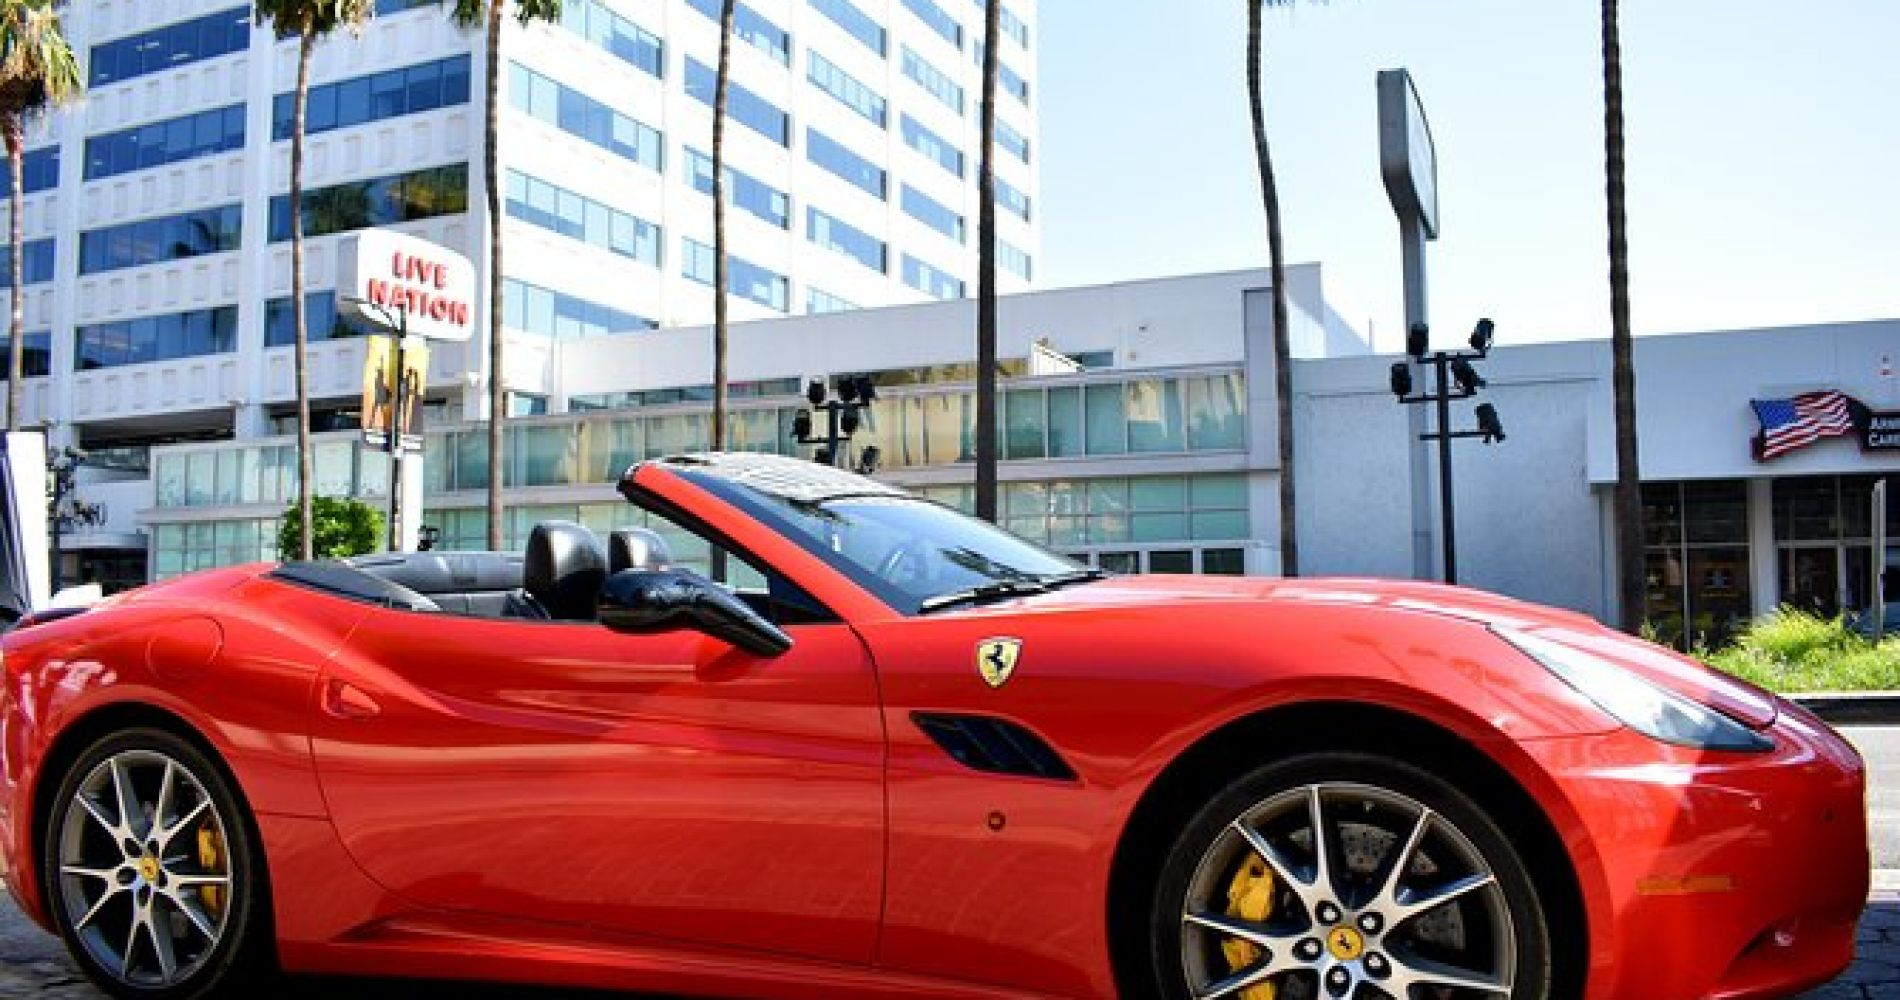 20 Min Ferrari Drive from Hollywood Blvd to Sunset Blvd